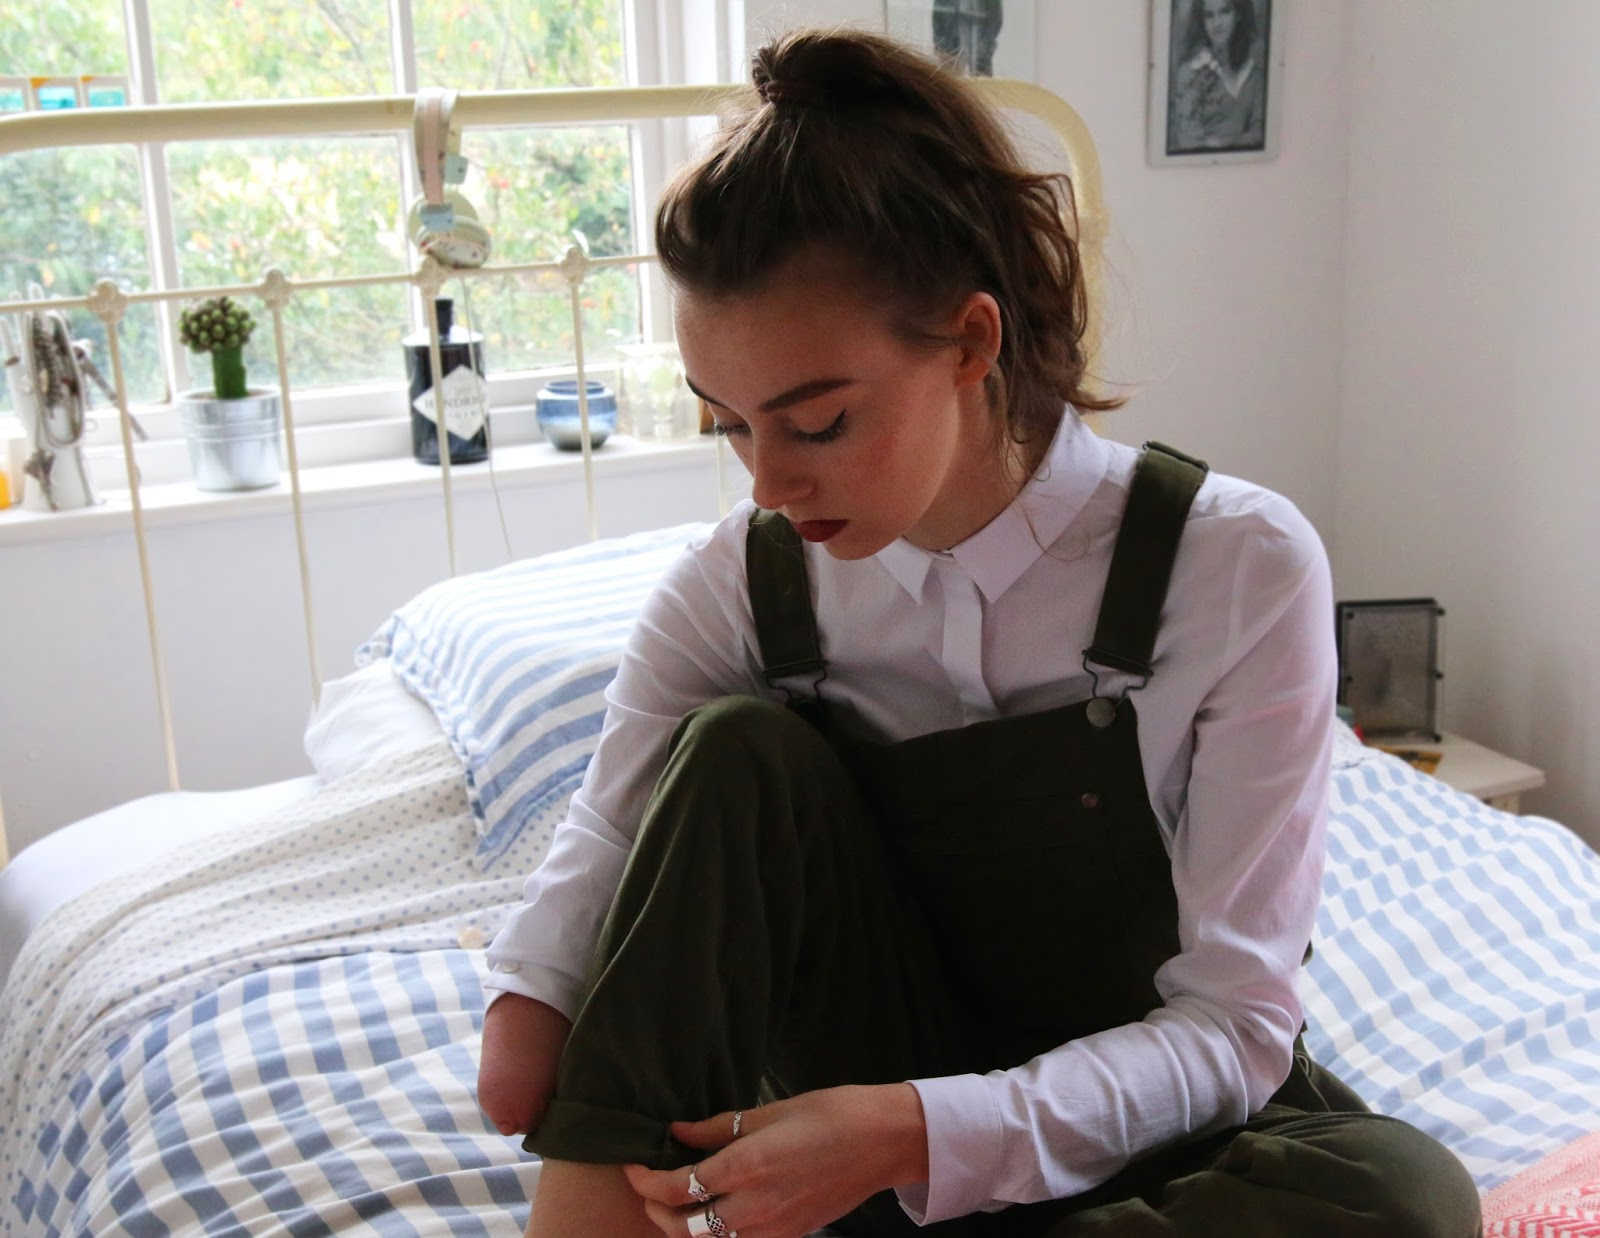 mandeville sisters, dungarees, overalls, green, ootd, blogger, fashion, british, grace mandeville, mandeville sisters, green overalls, green dungarees, asos, cos shirt,